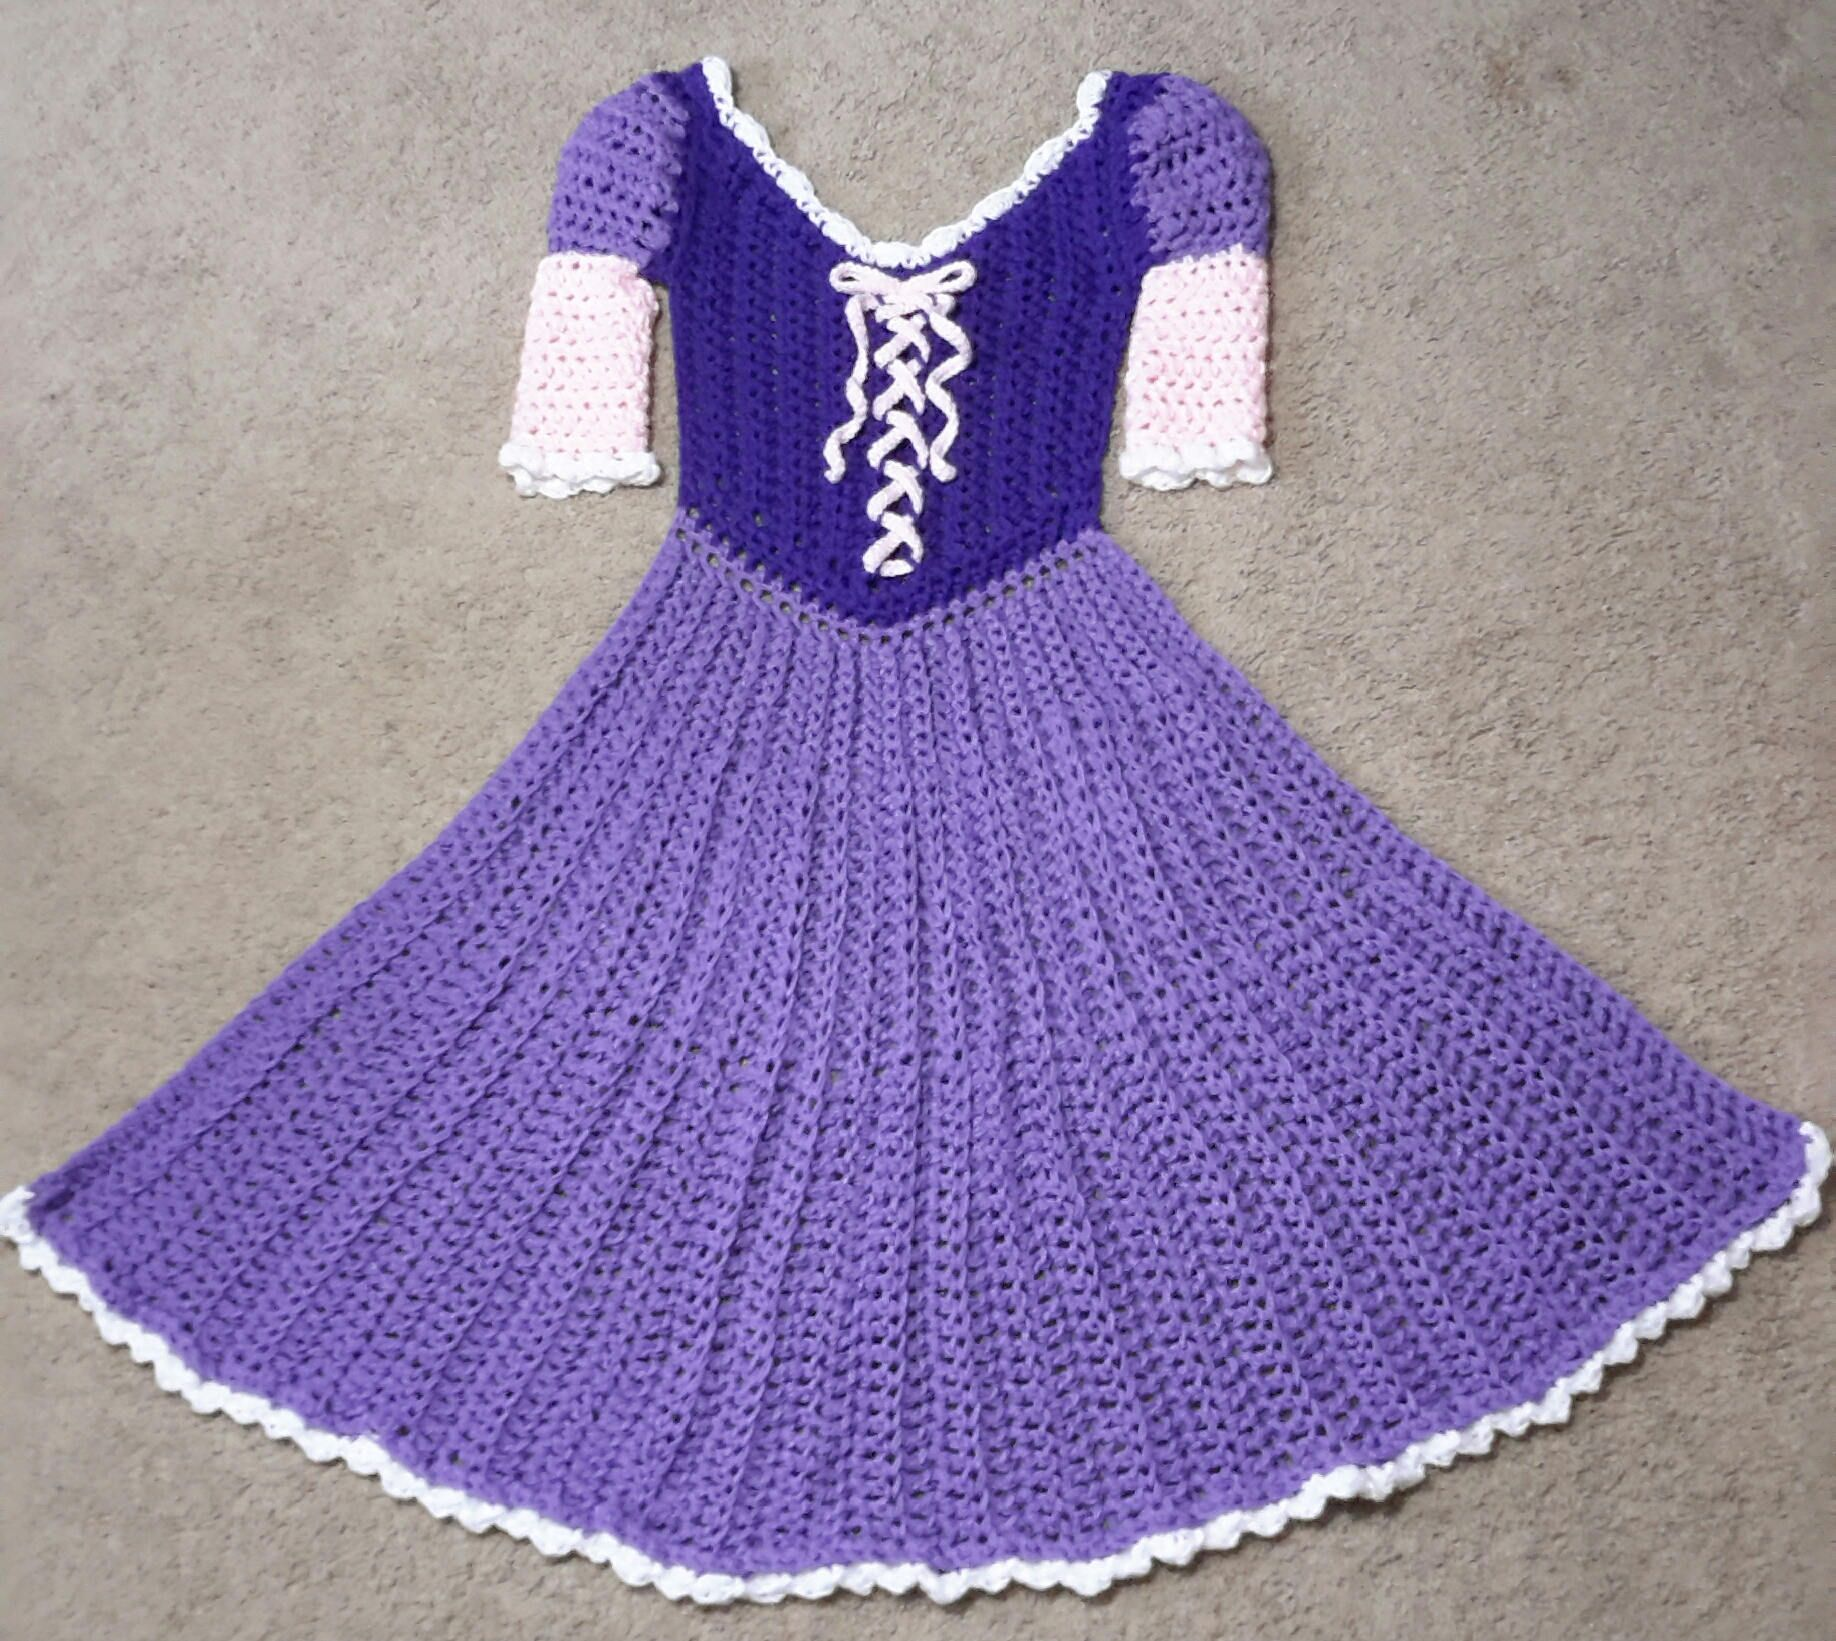 crochet dress to How a adult